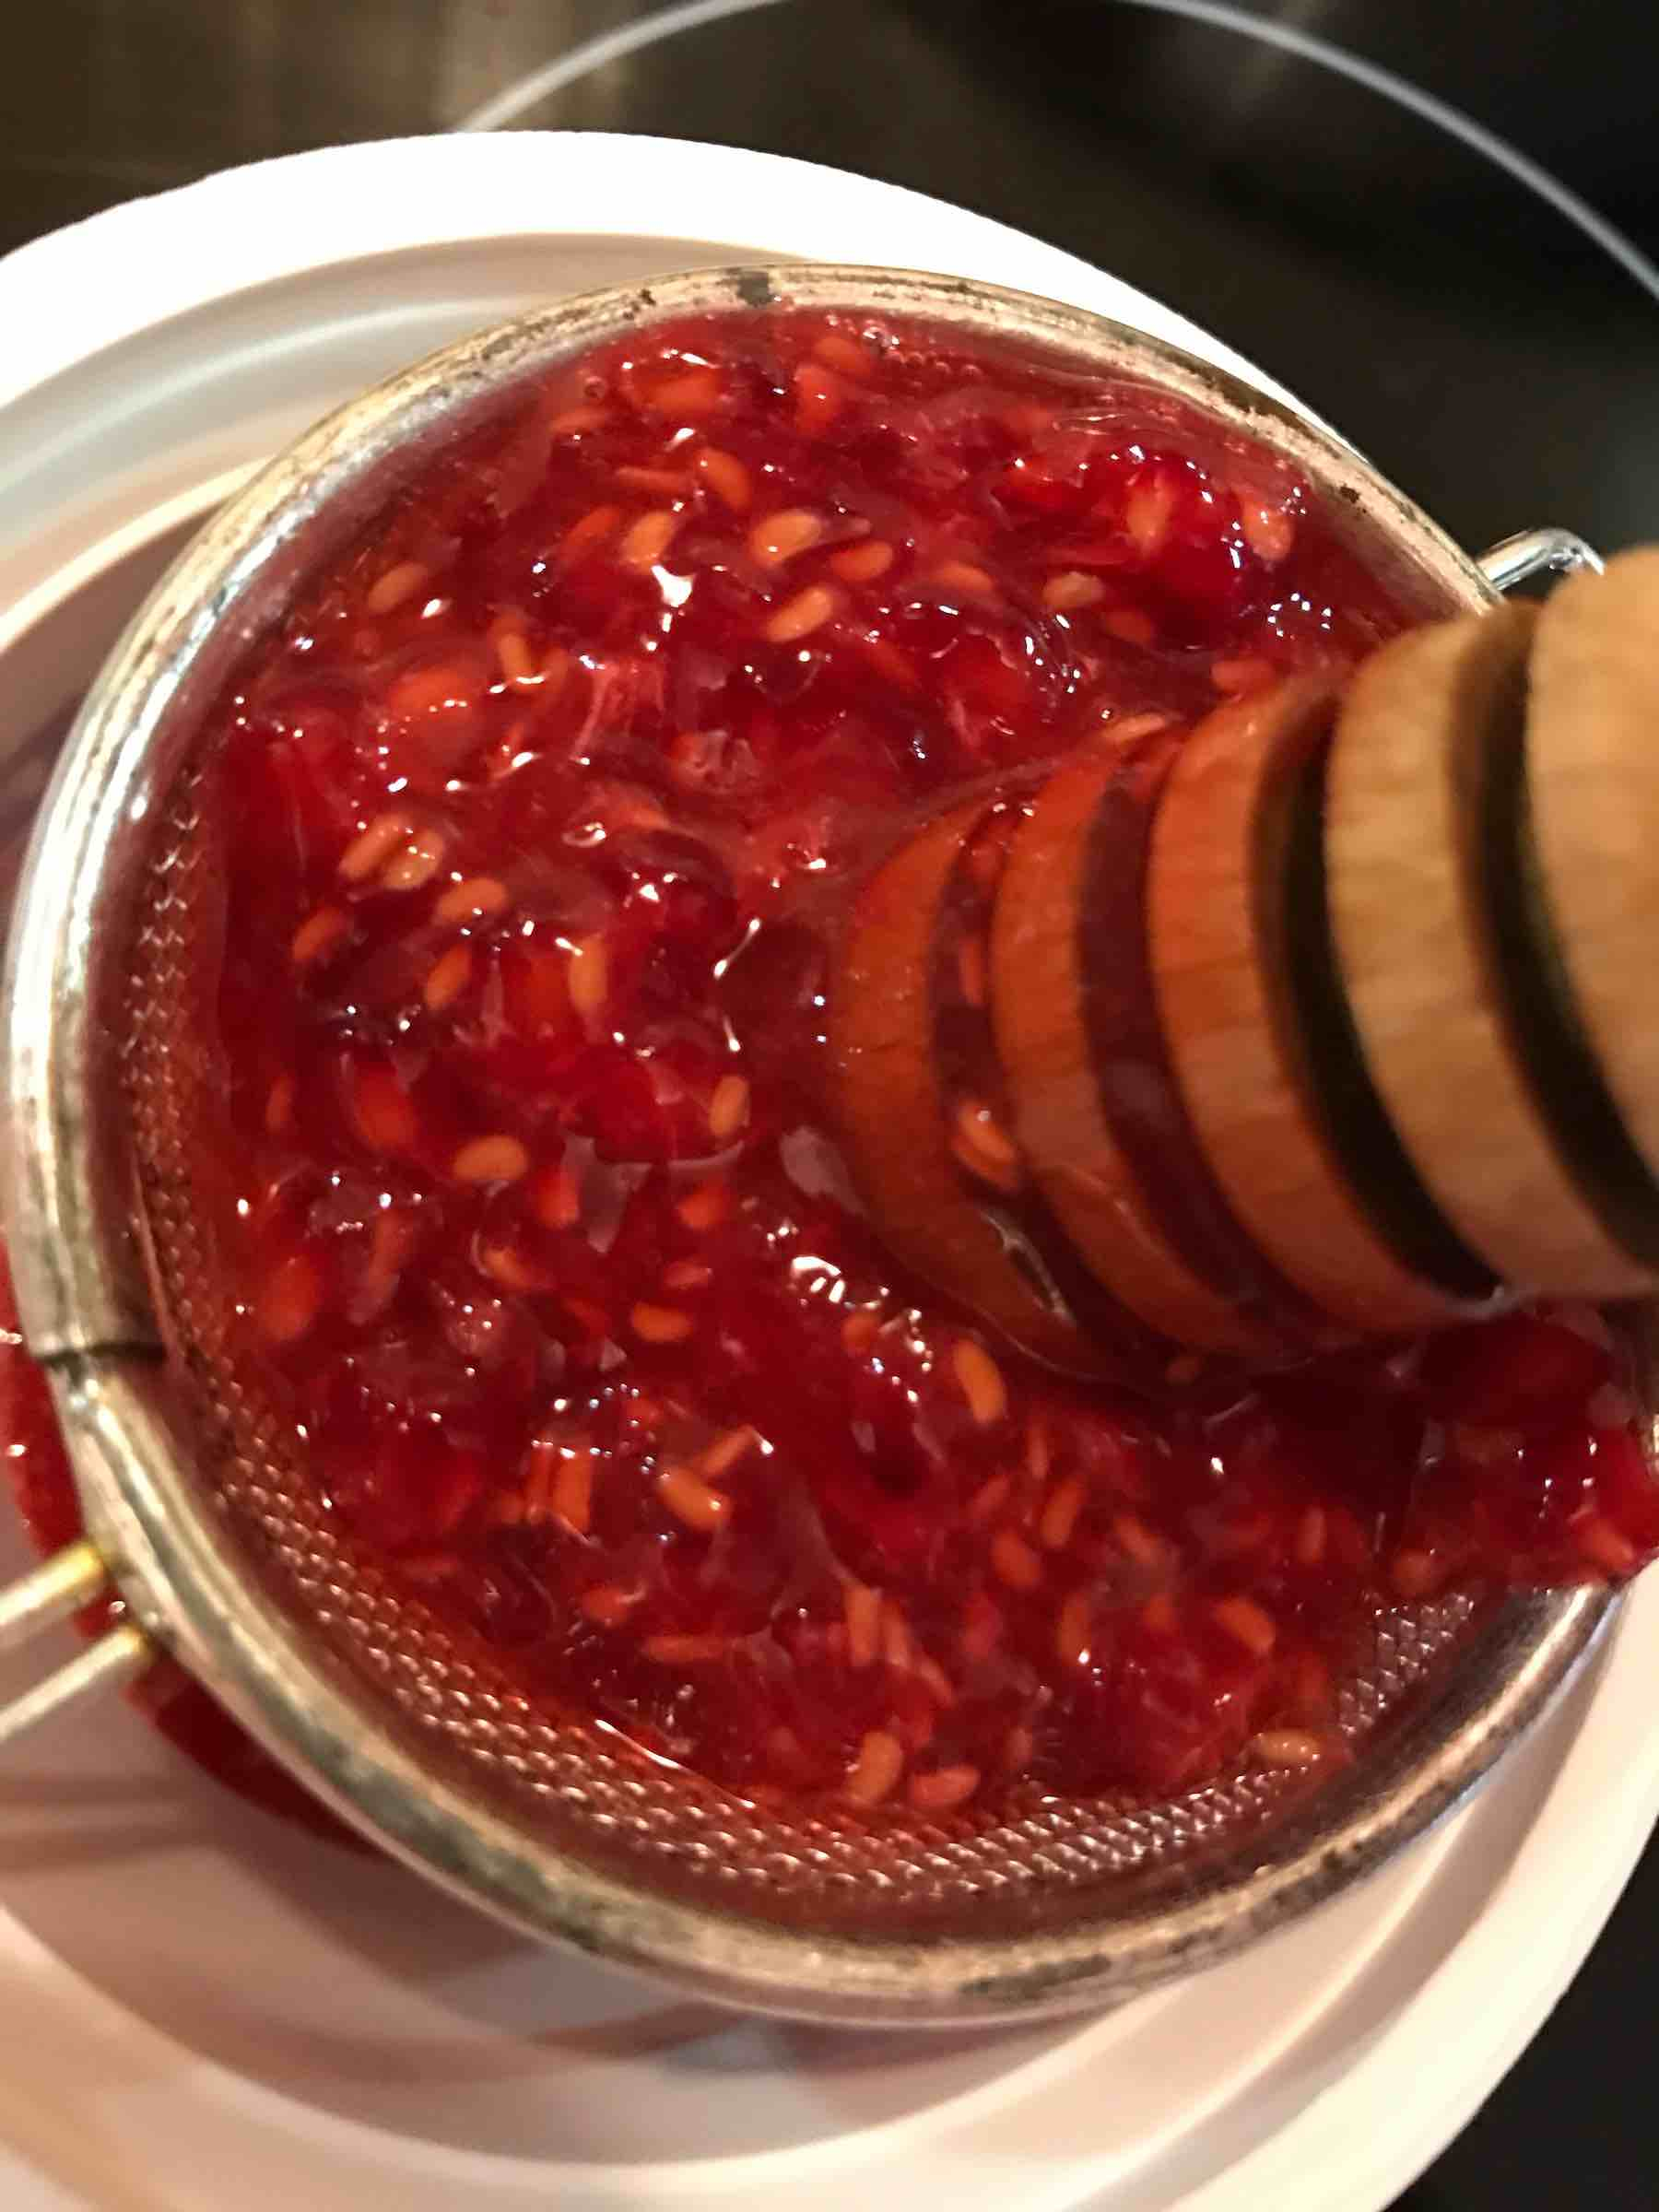 Raspberries being mashed